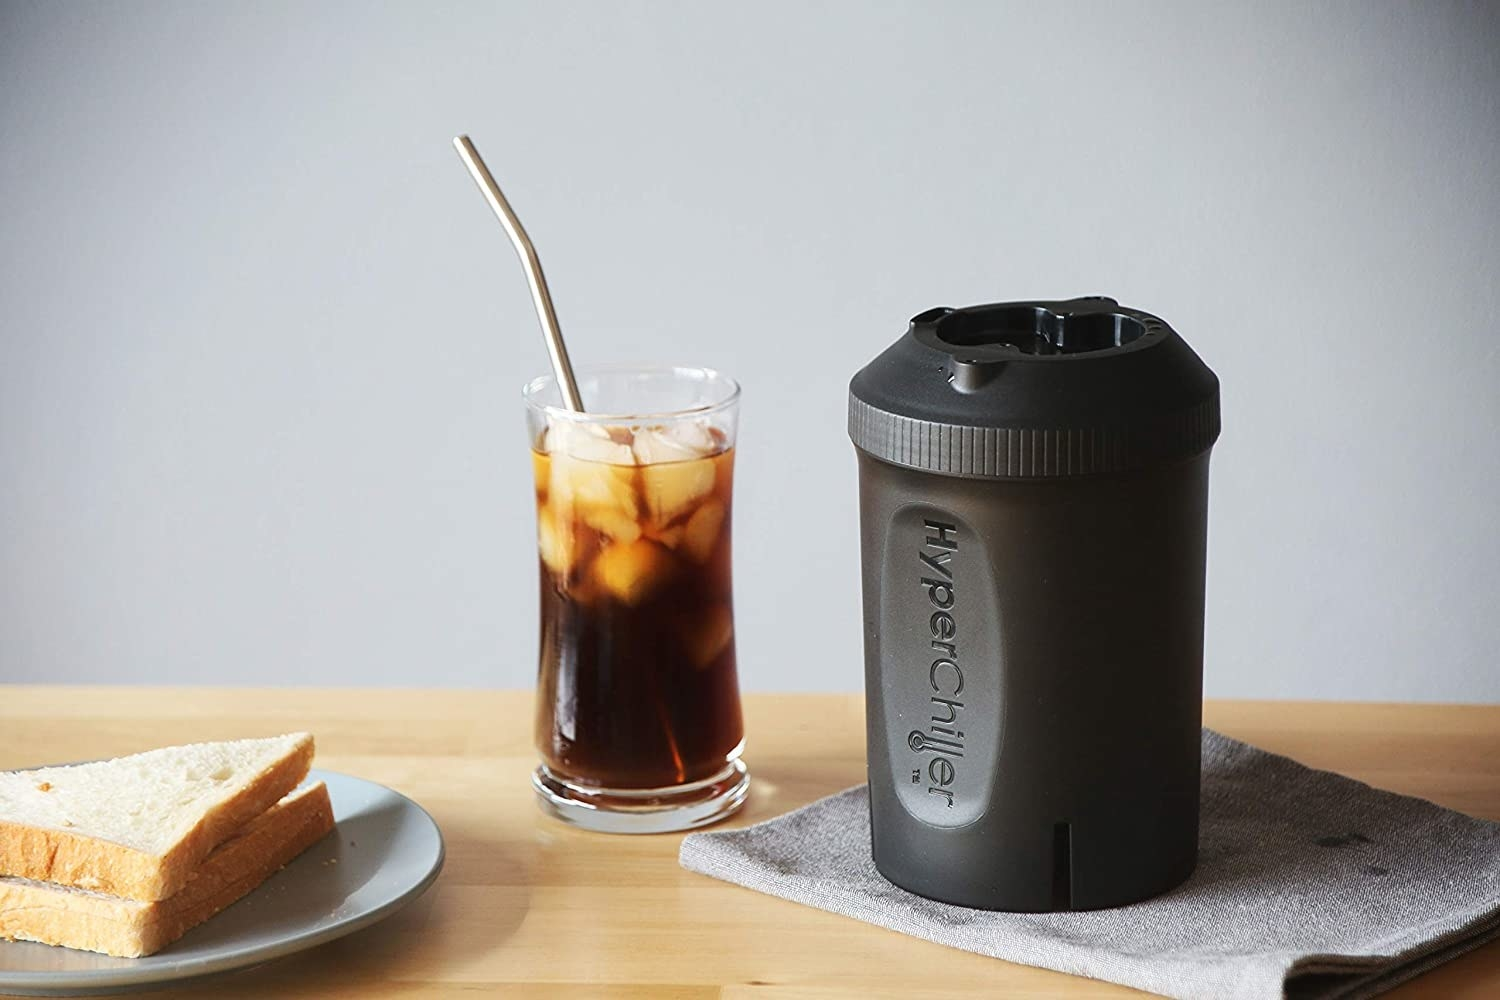 The beverage chiller next to a glass of iced coffee on a butcher block counter